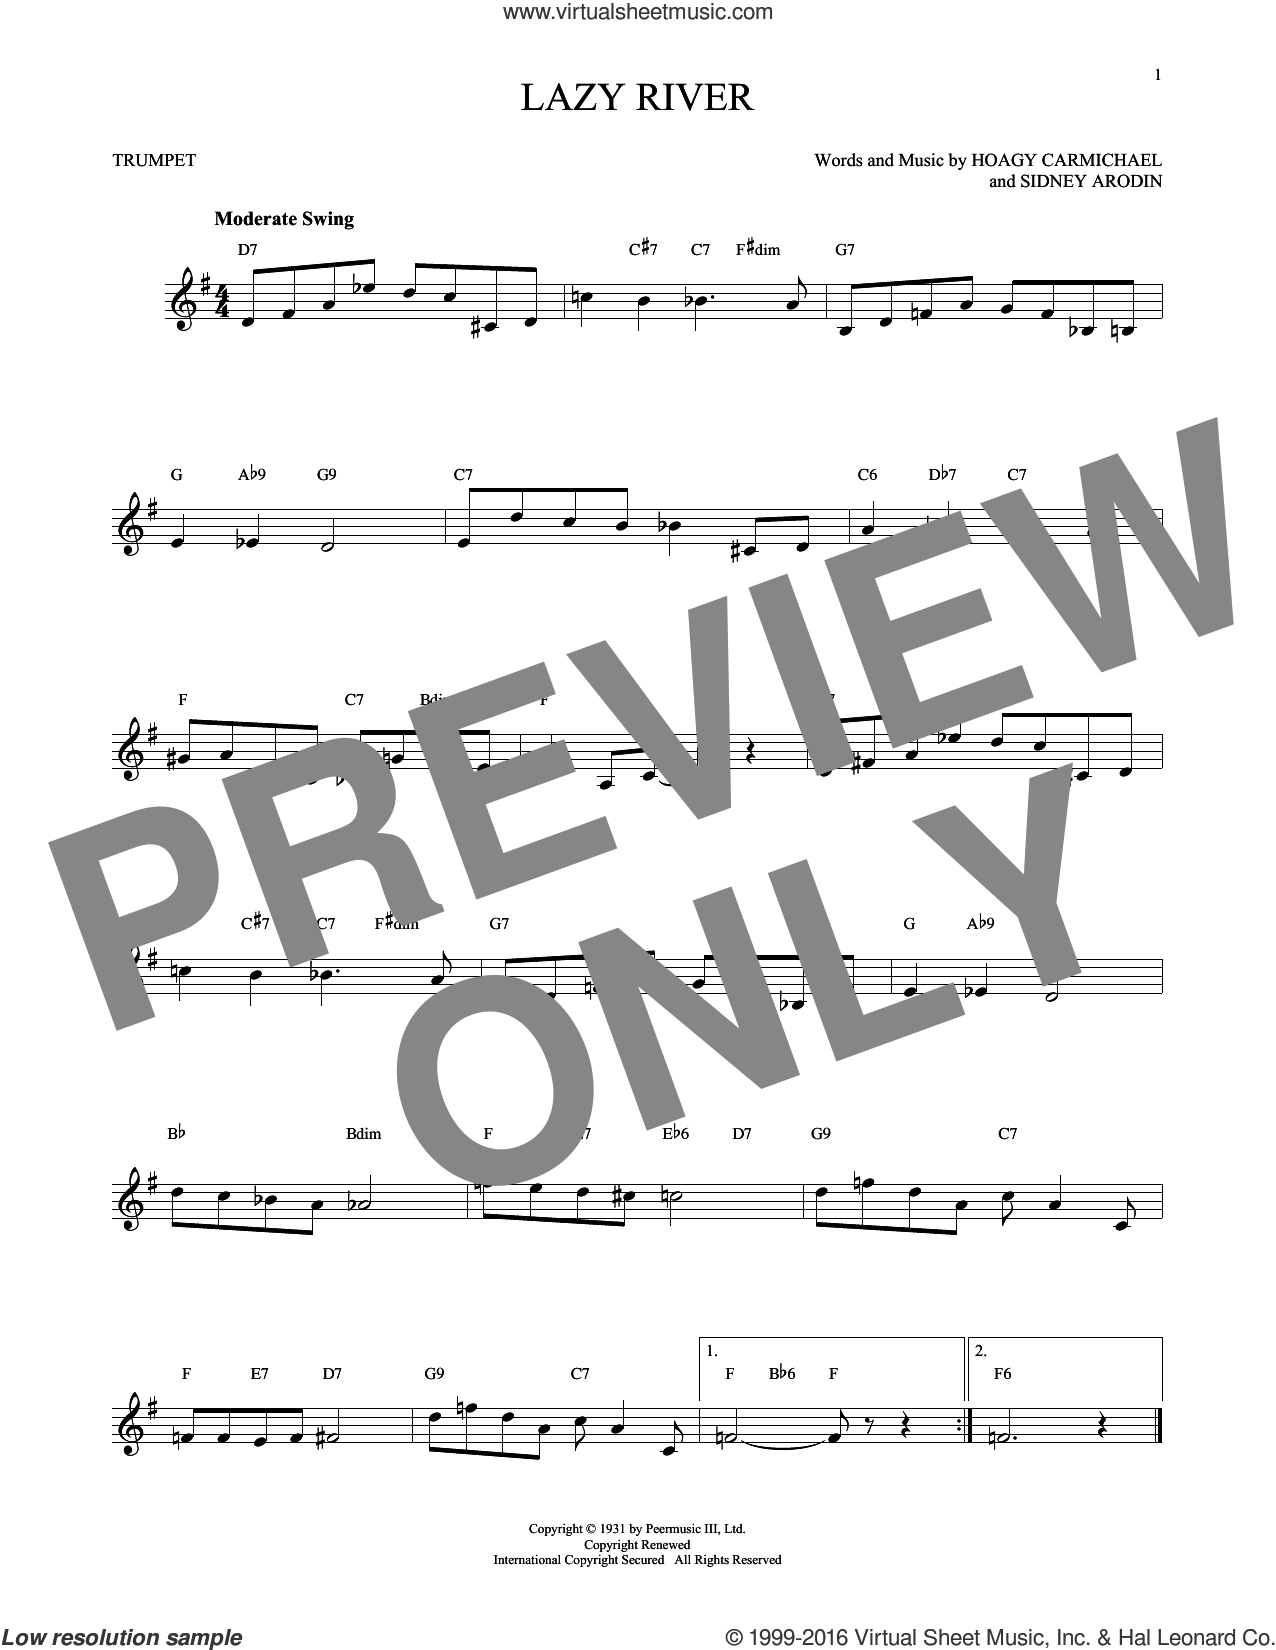 Lazy River sheet music for trumpet solo by Hoagy Carmichael, Bobby Darin and Sidney Arodin, intermediate skill level